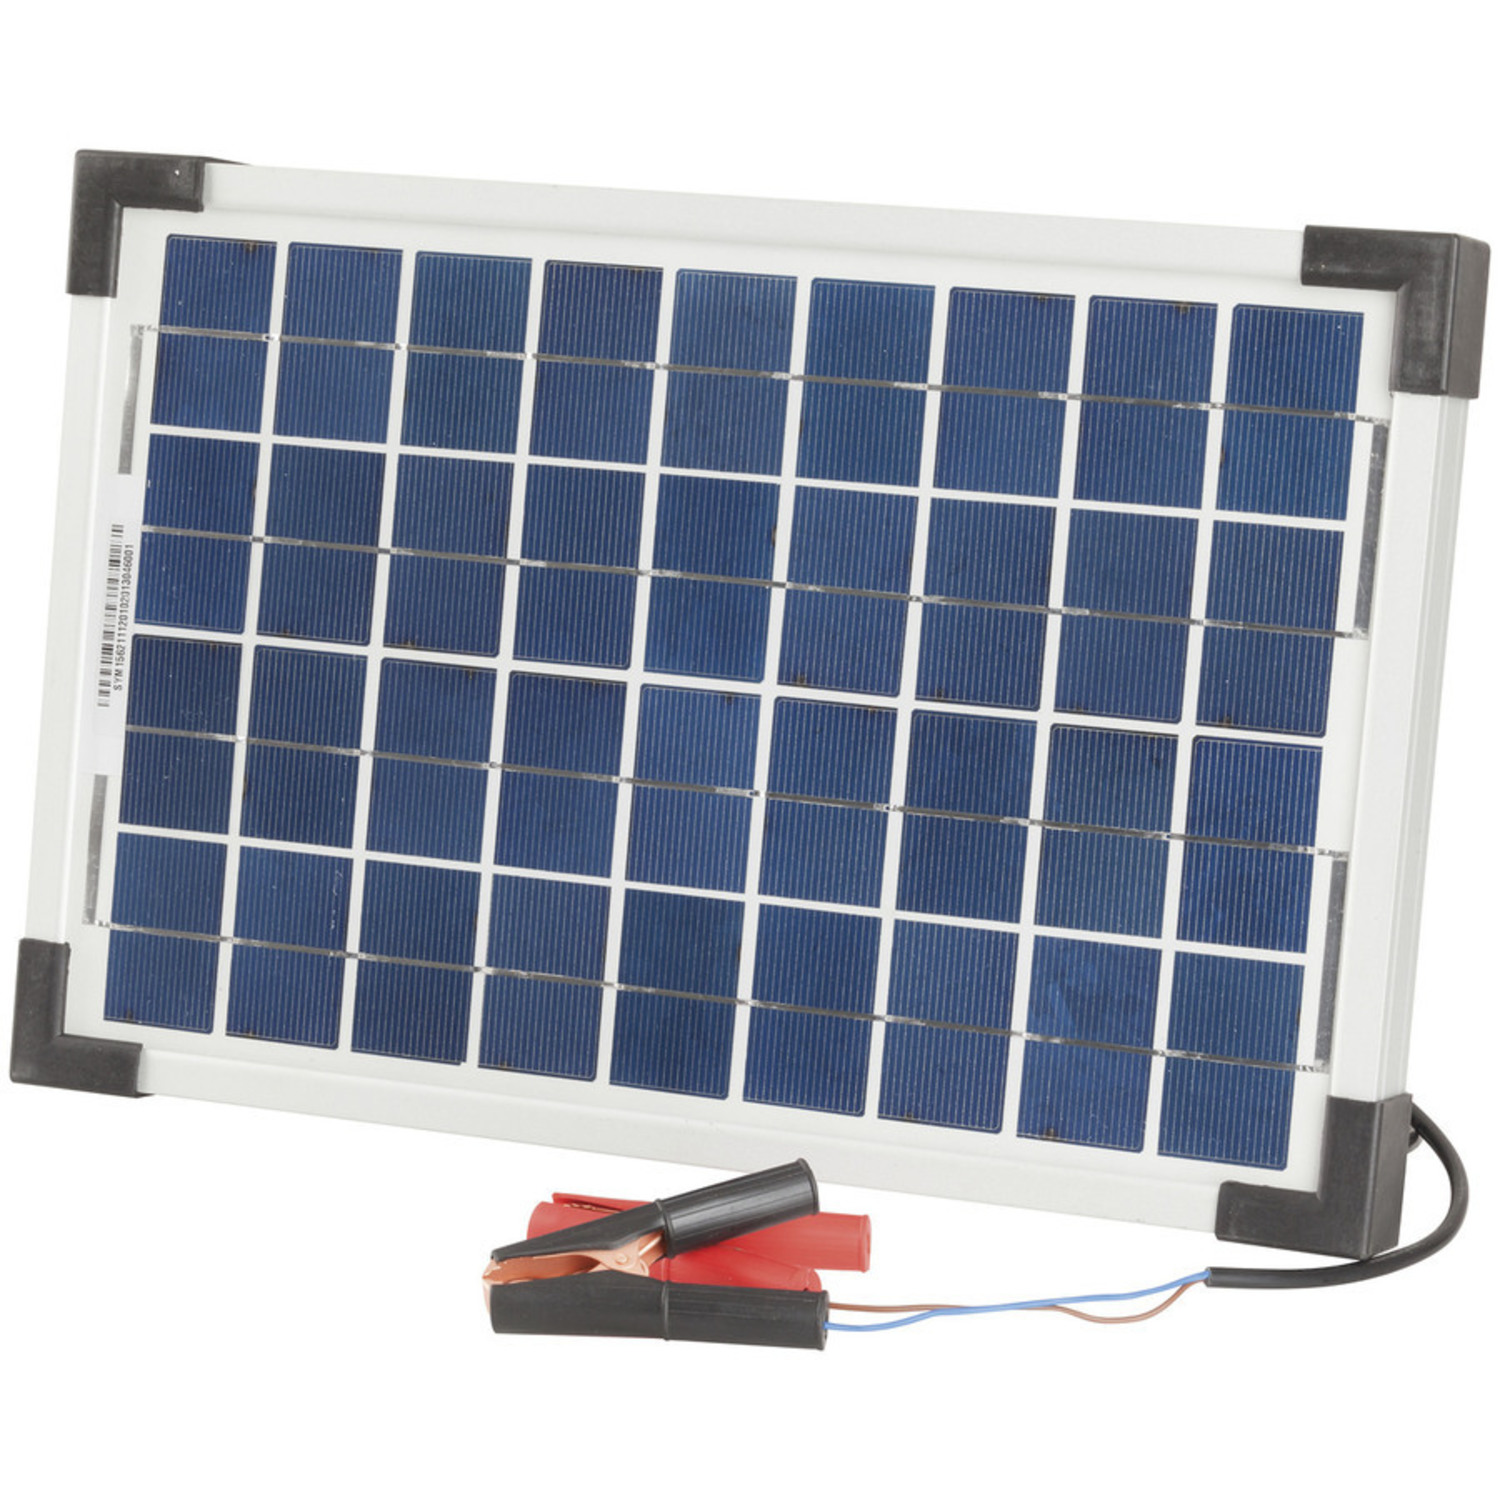 Simple 12v Aa Battery Solar Charger Circuit